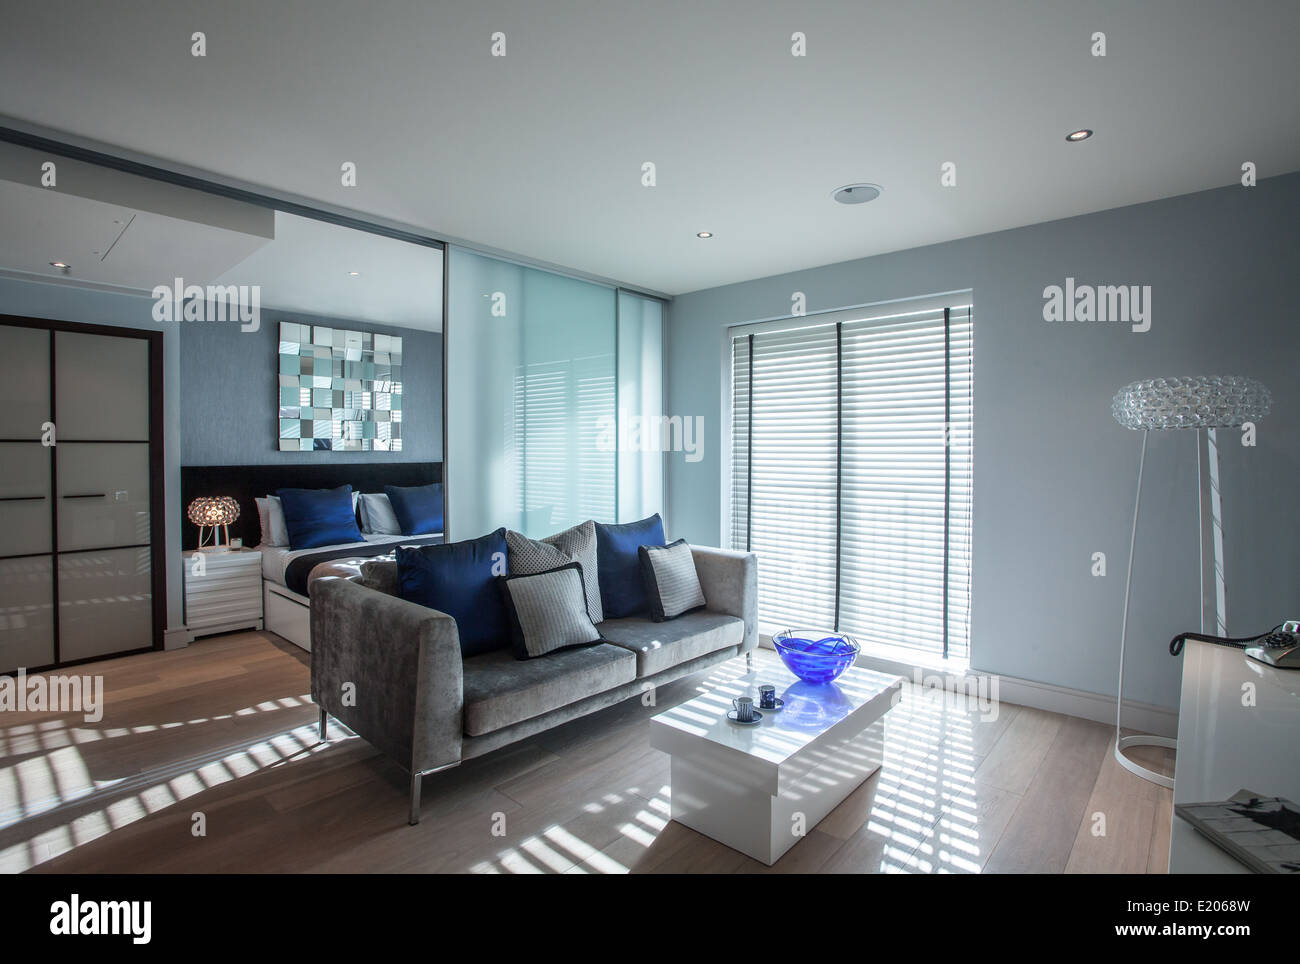 A Chelsea Creek development showhome on the River Thames near Chelsea, London, UK - Stock Image